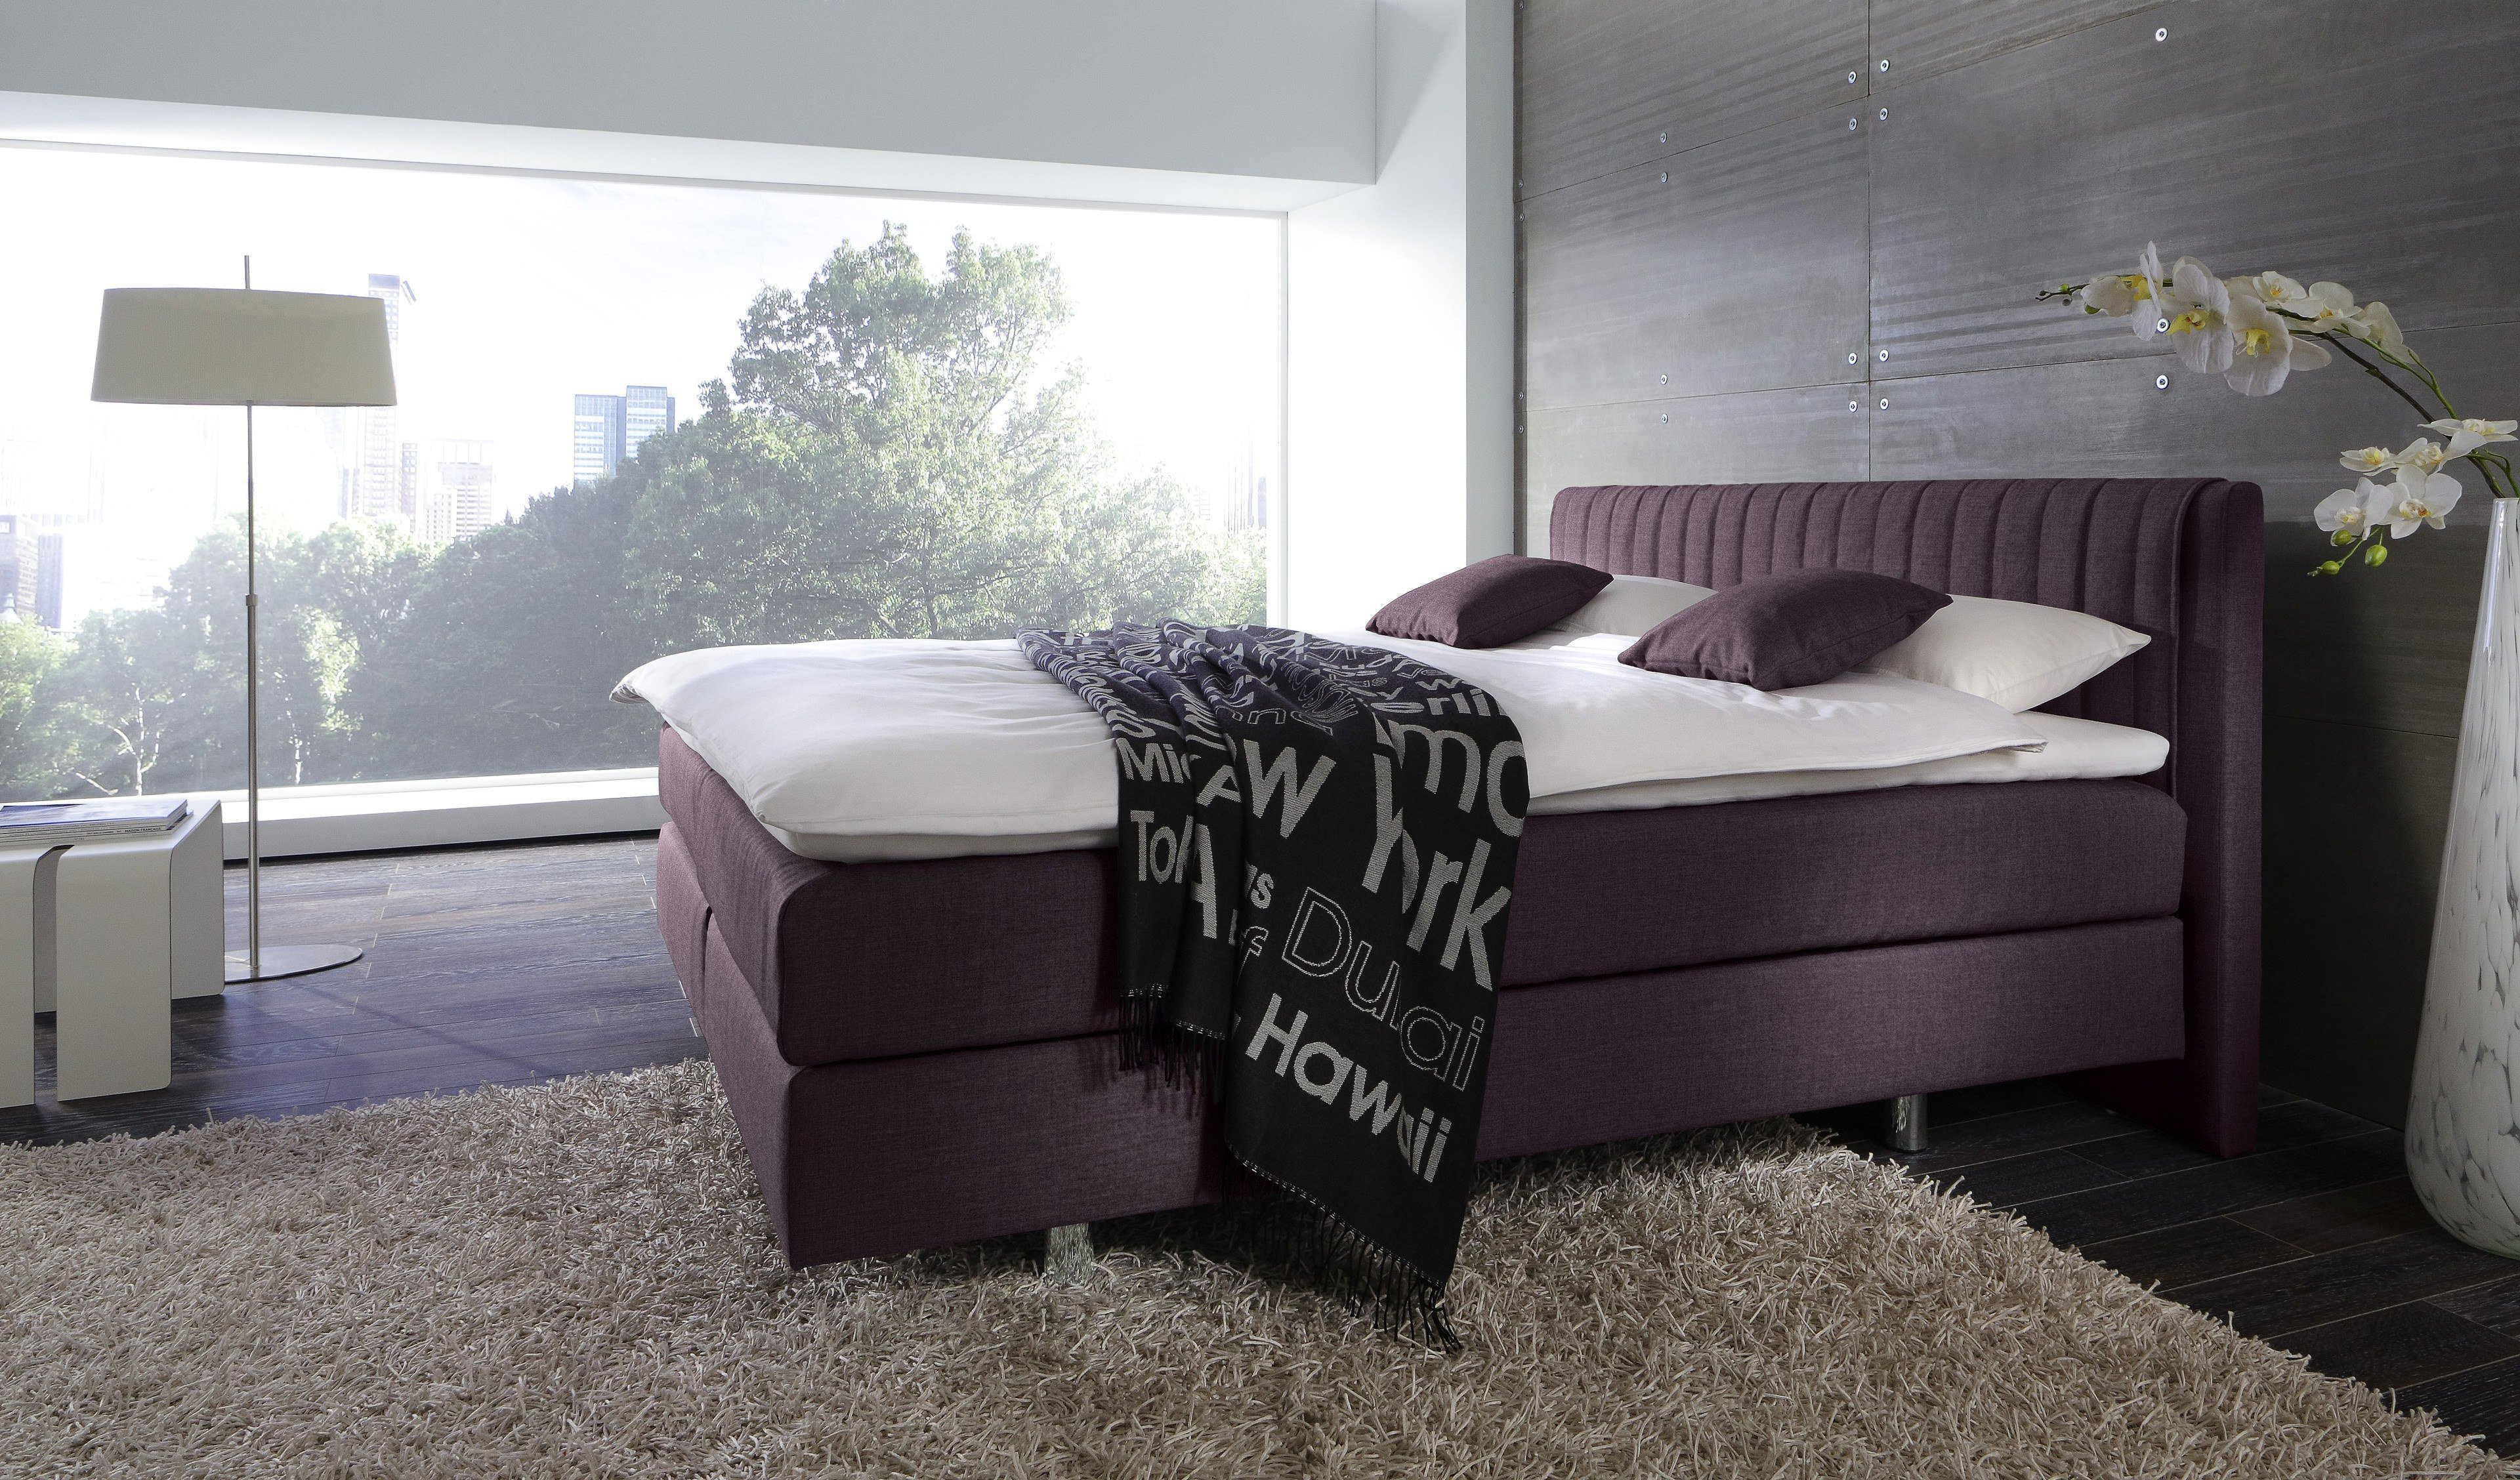 femira couture boxspringbett in aubergine m bel letz ihr online shop. Black Bedroom Furniture Sets. Home Design Ideas